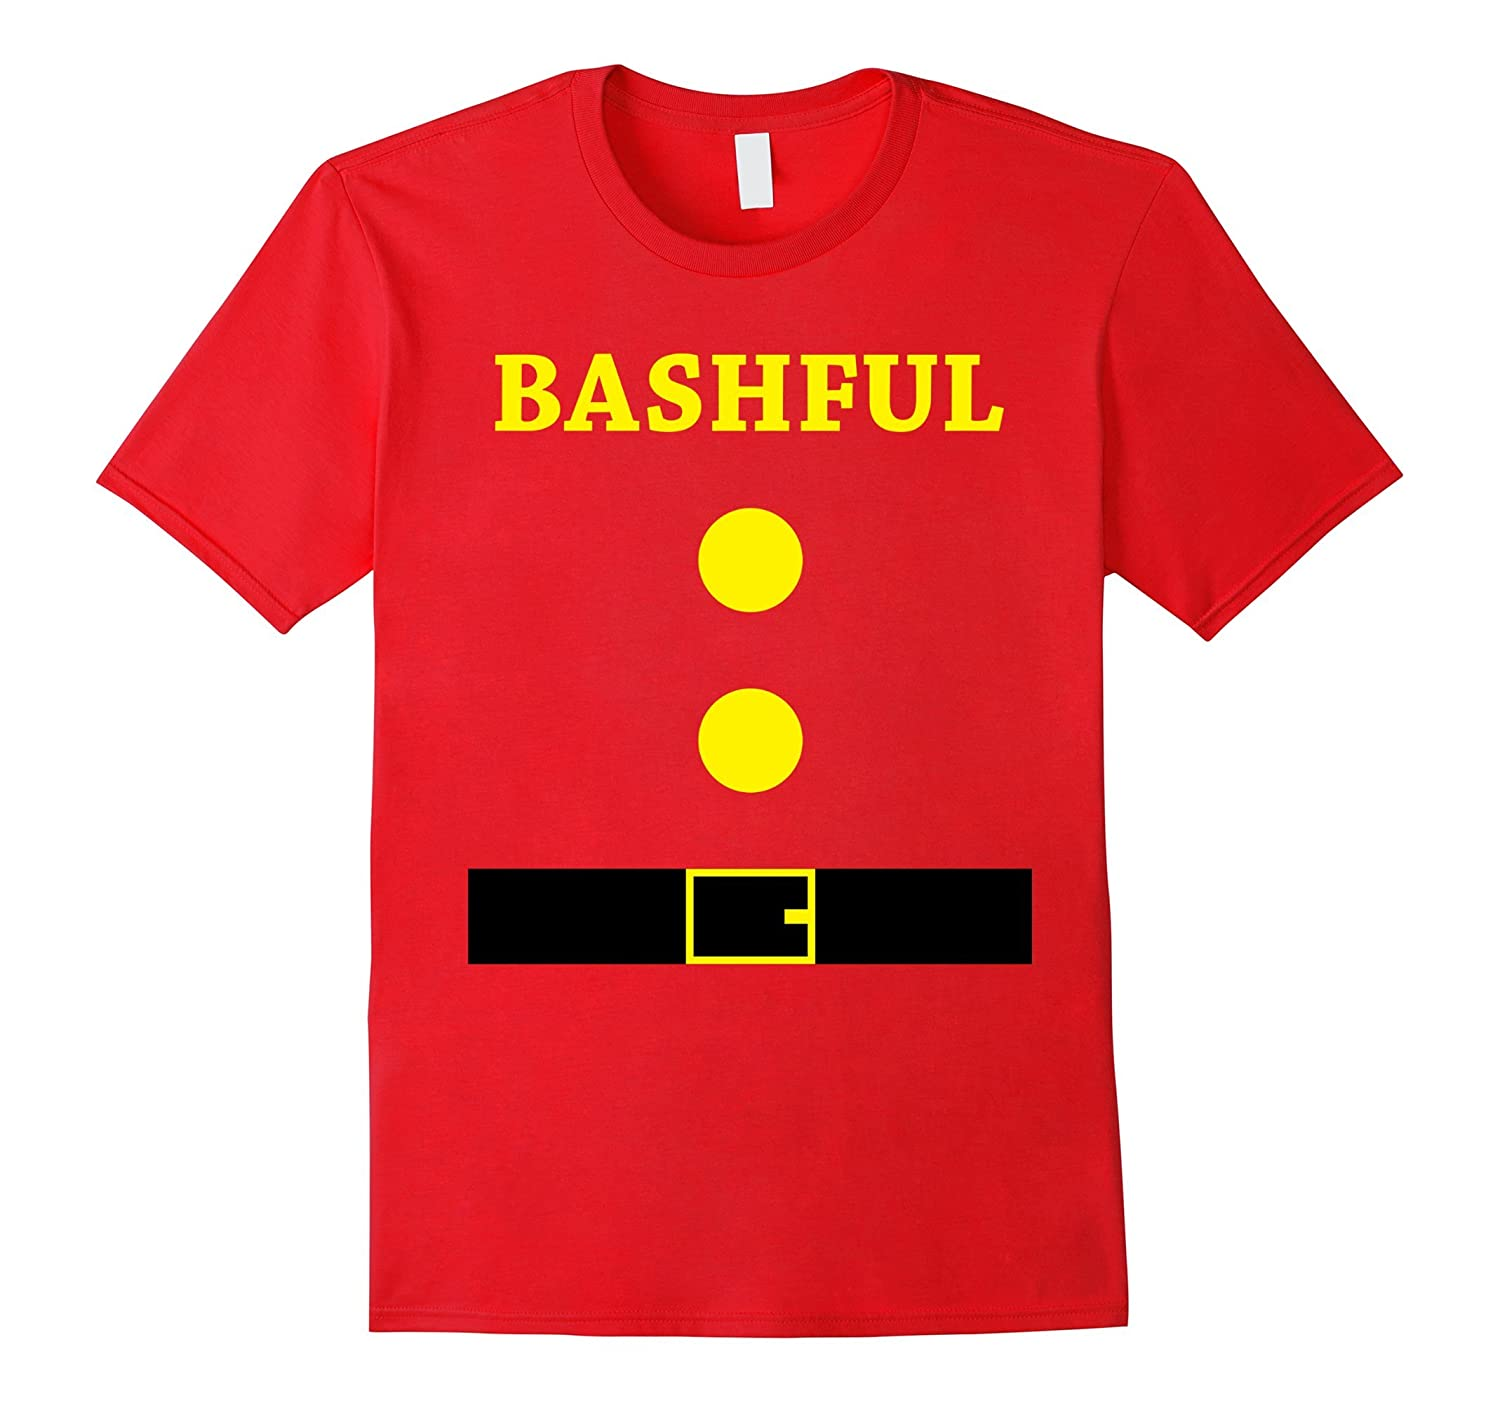 Bashful Halloween Costume Bashful Team Christmas T-Shirt-T-Shirt